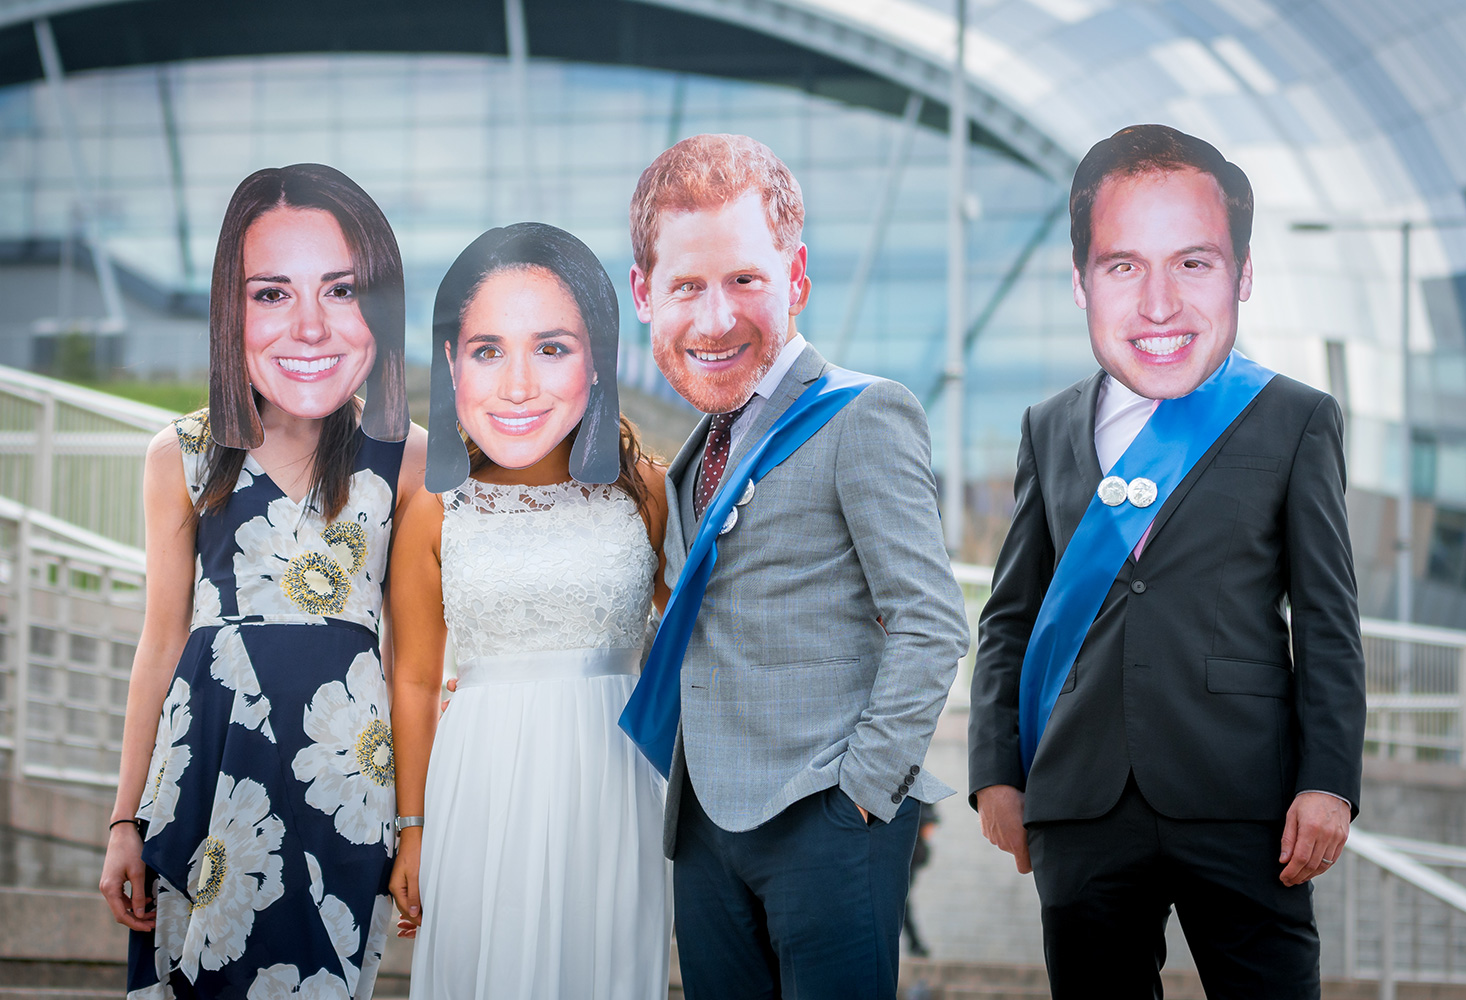 Prince Harry and Prince William with their partners